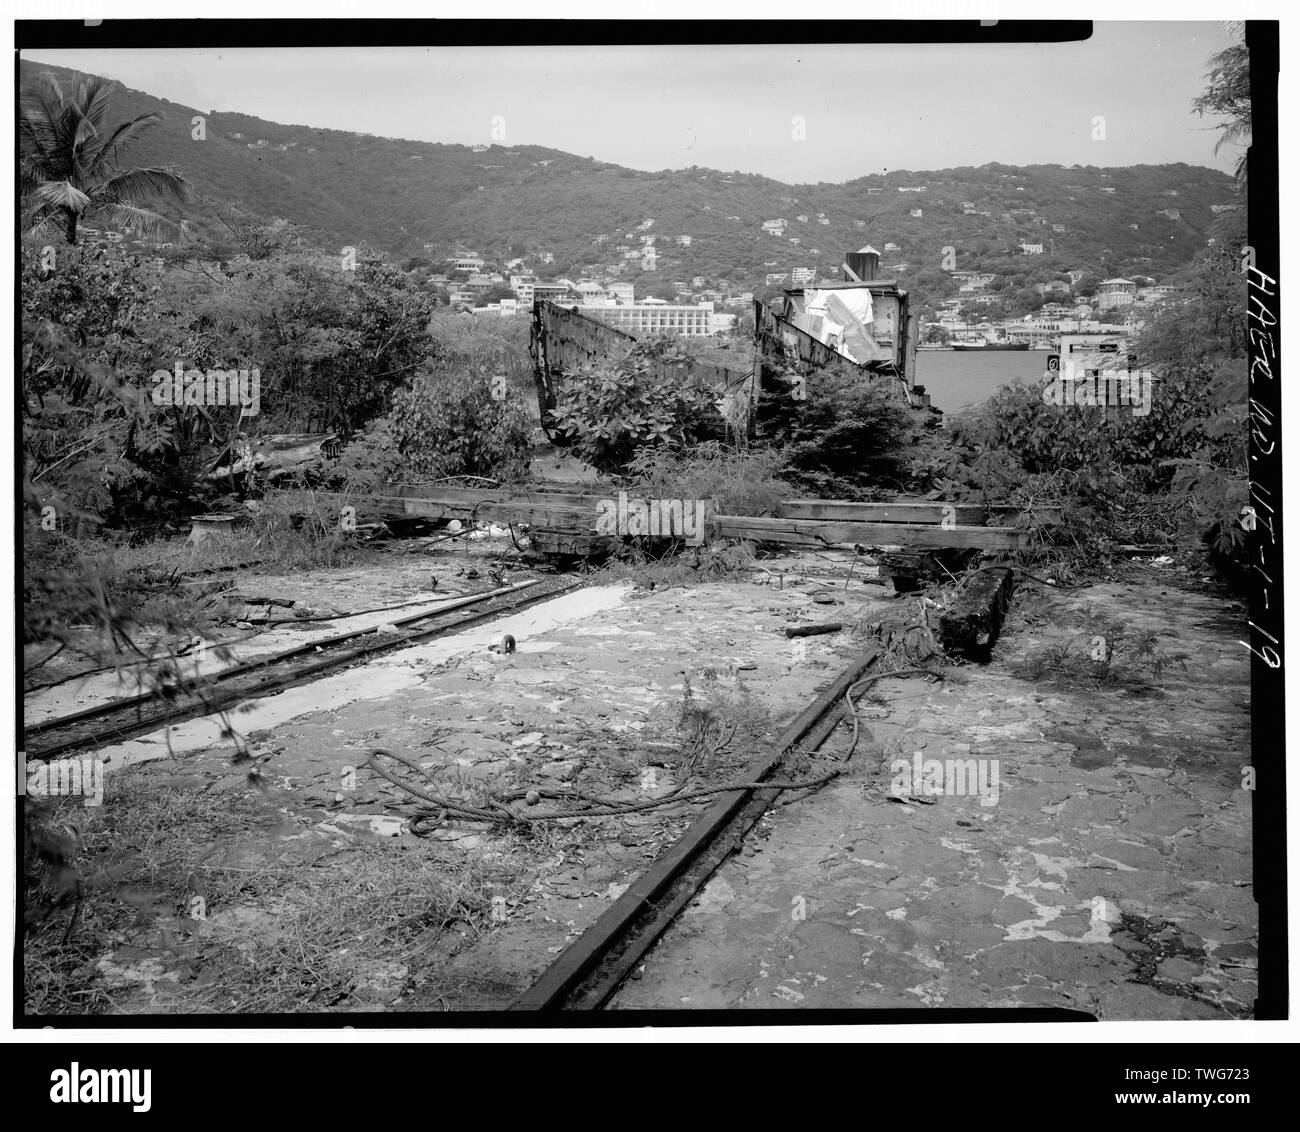 RAILWAY WITH LANDING CRAFT BACKROUND - Creque Marine Railway, Charlotte Amalie, St. Thomas, VI; St Thomas Marine Railway Company; Rothschild, L; Recht, W; Creque, Henry O; Harley, Alfonz; Creque, Herman O; Creque, Henry O, Jr; Morris, Scott, transmitter; DeBoer, Ruth, transmitter; Virgin Islands Planning Office, sponsor; Delony, Eric, project manager - Stock Image